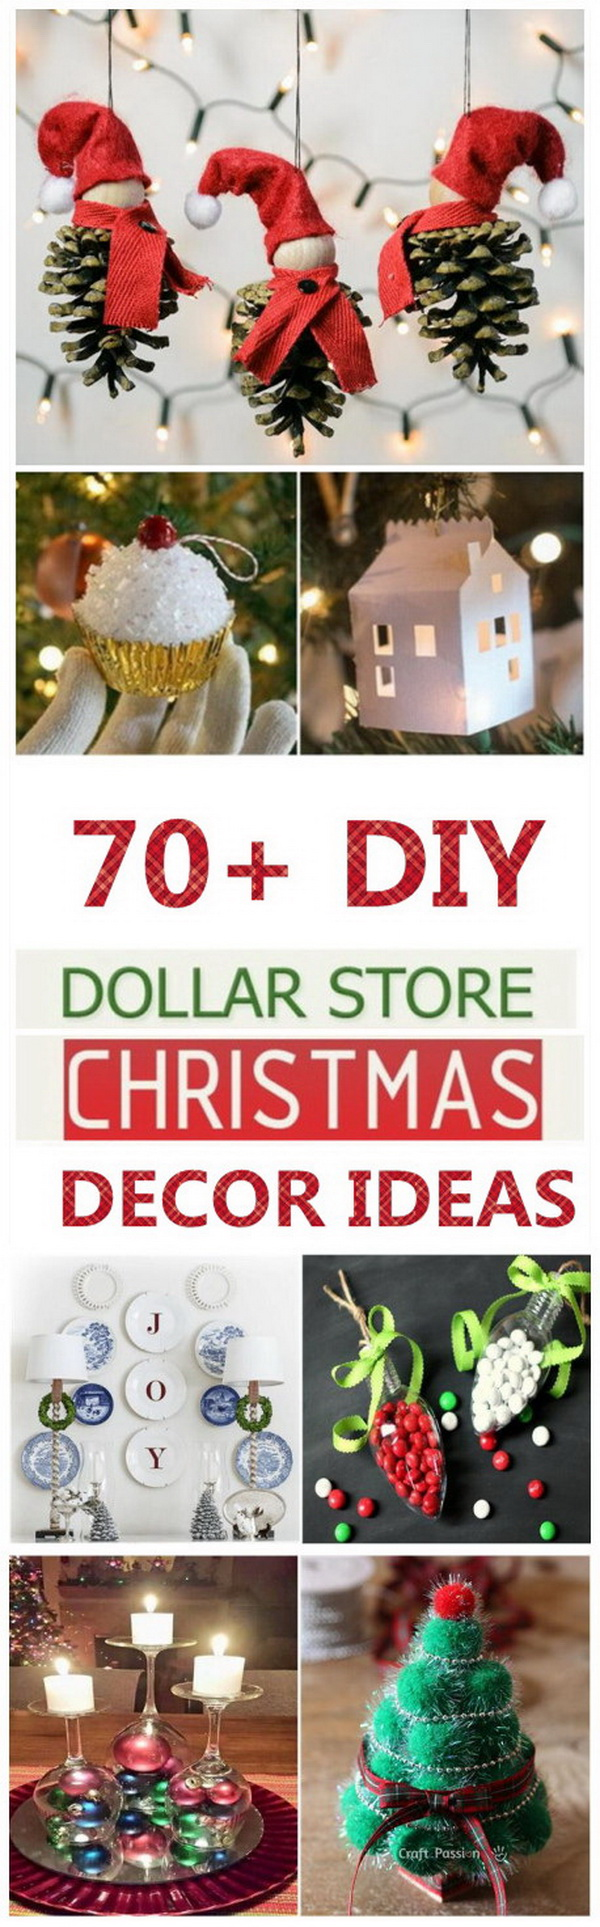 70+ DIY Dollar Store Christmas Decor Ideas - For Creative Juice